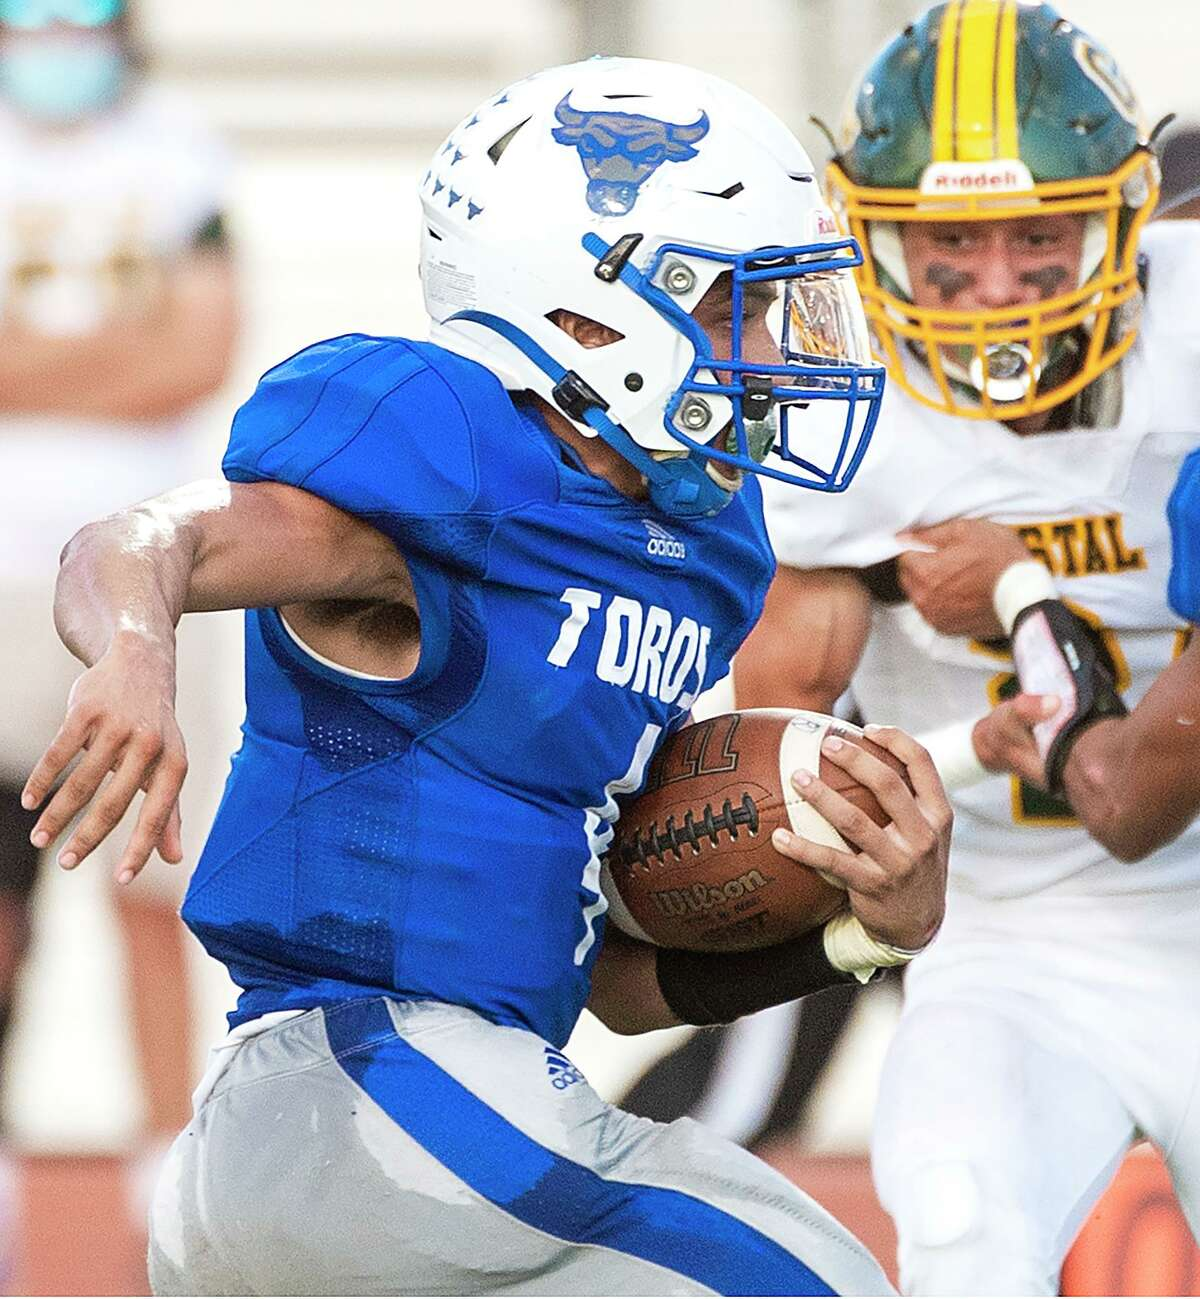 Ya-aqob Lozano ran for four touchdowns as Cigarroa claimed its third-straight victory thanks to a win over Crystal City on Friday.